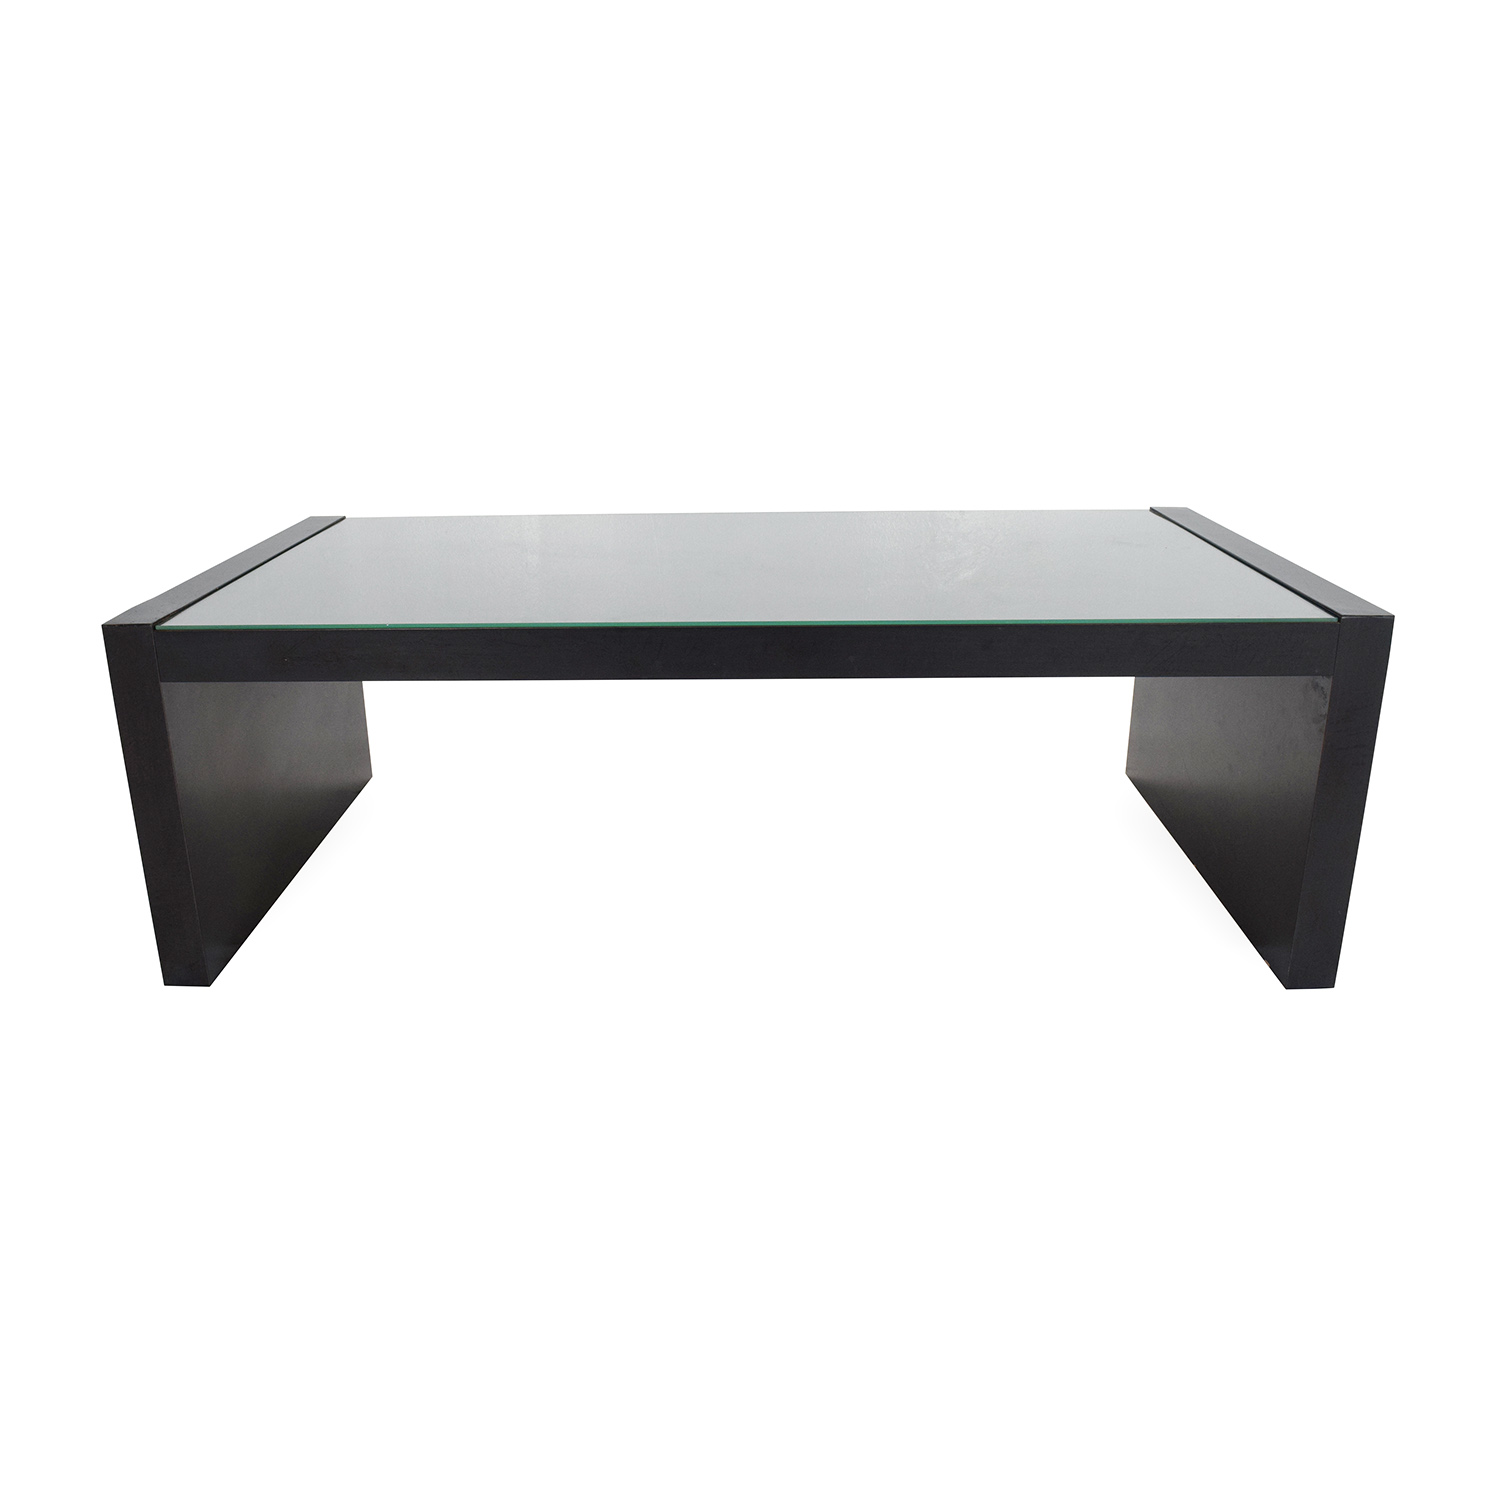 66 off ikea expedit coffee table tables for Ikea glass table tops